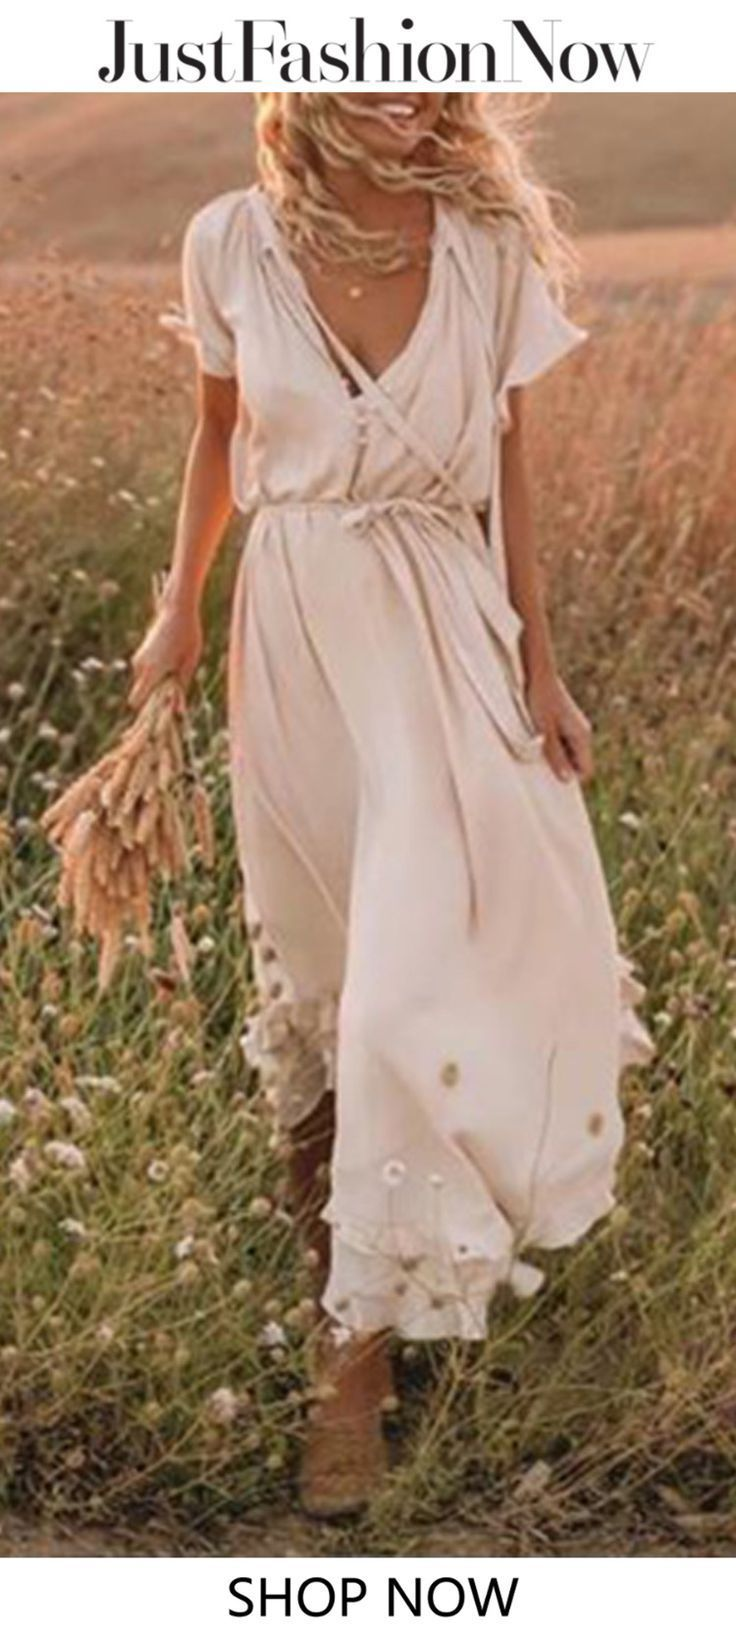 My Favorite Skirts For Spring Weather Dresses Casual Boho Maxi Dress Summer Maxi Dress [ 1634 x 736 Pixel ]